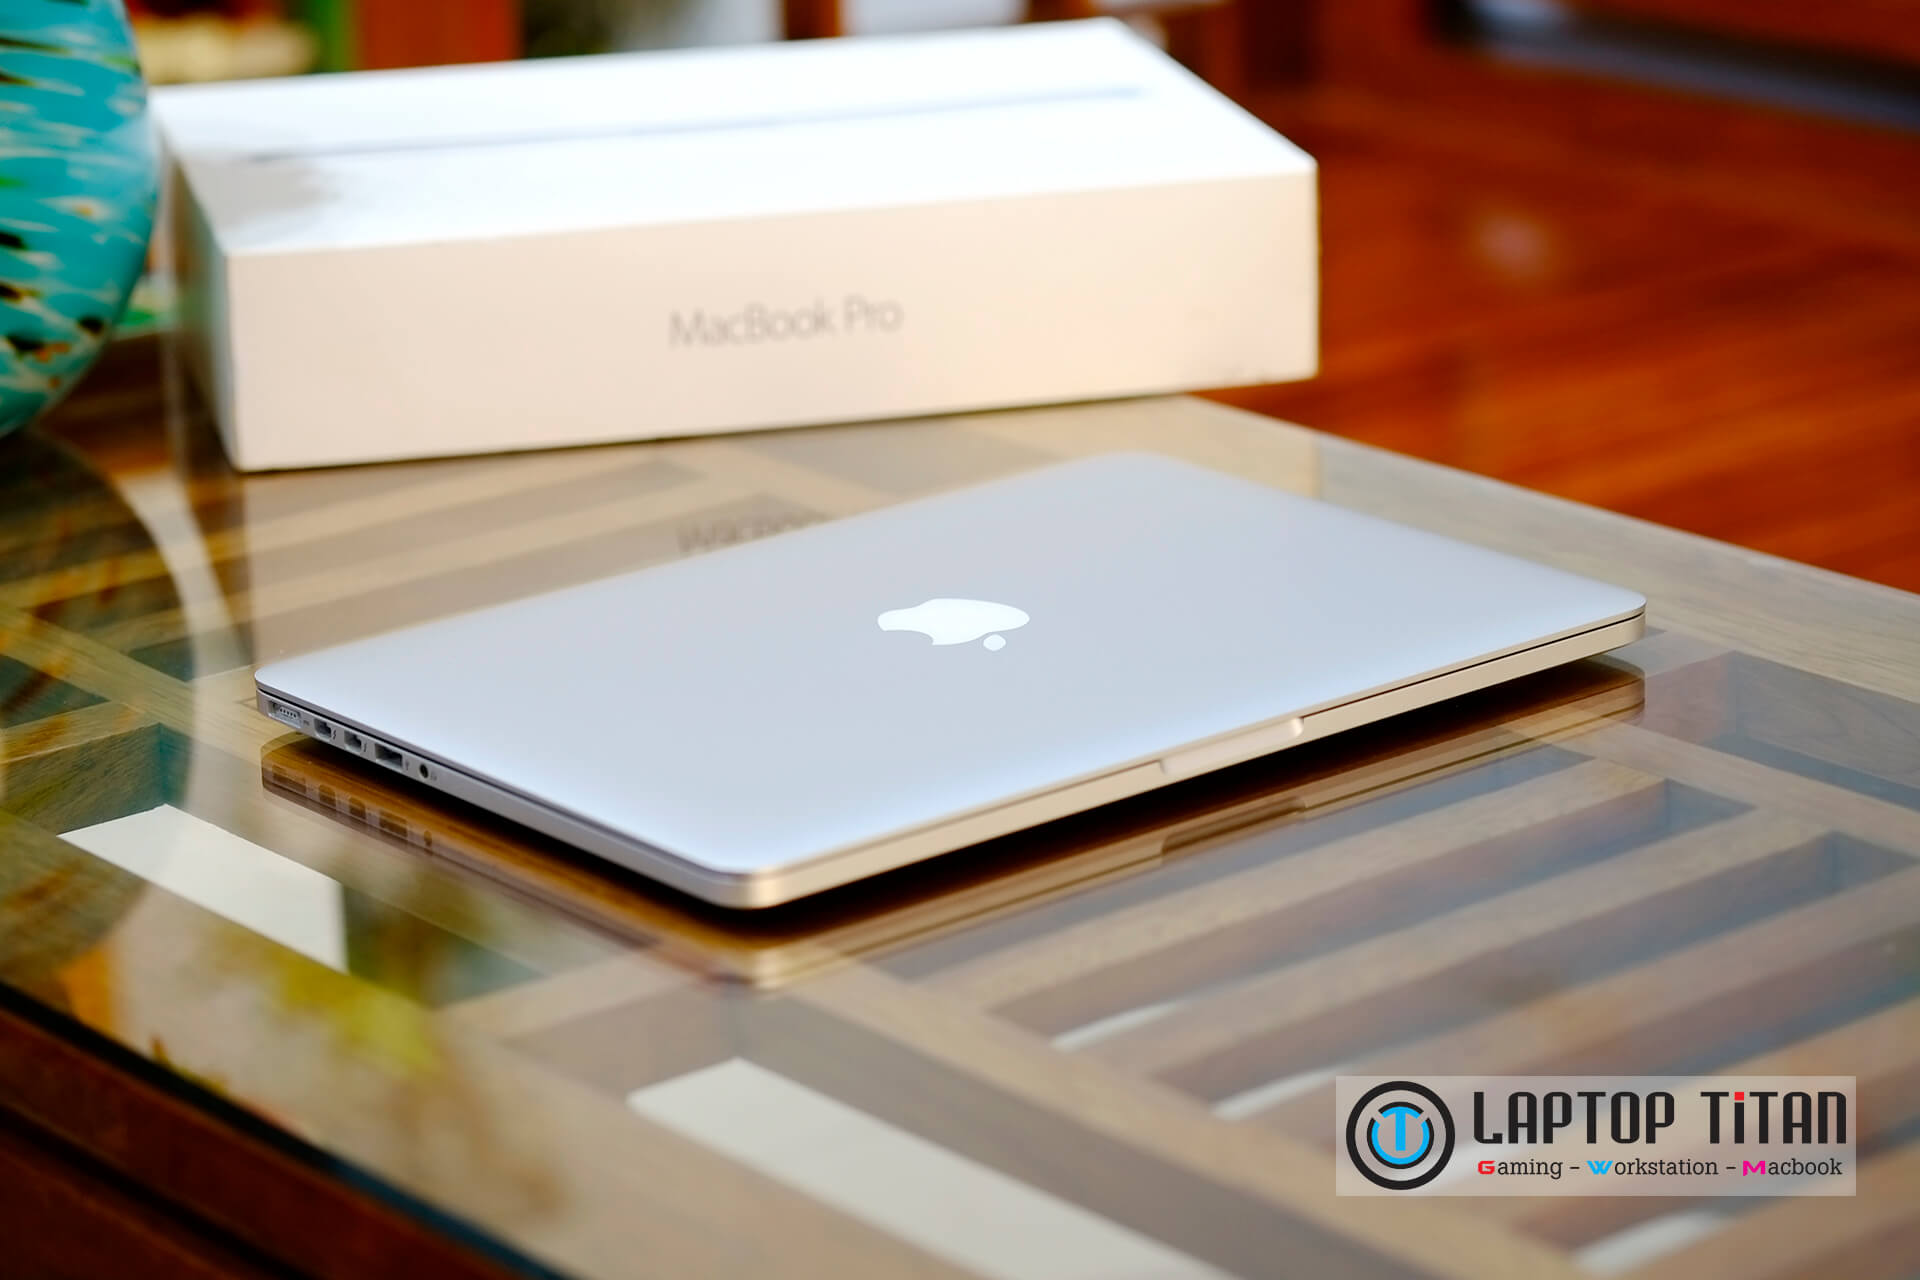 Macbook Pro 2015 MF839 i5 / 8GB / 128GB / 13.3-inch Retina / New 99%